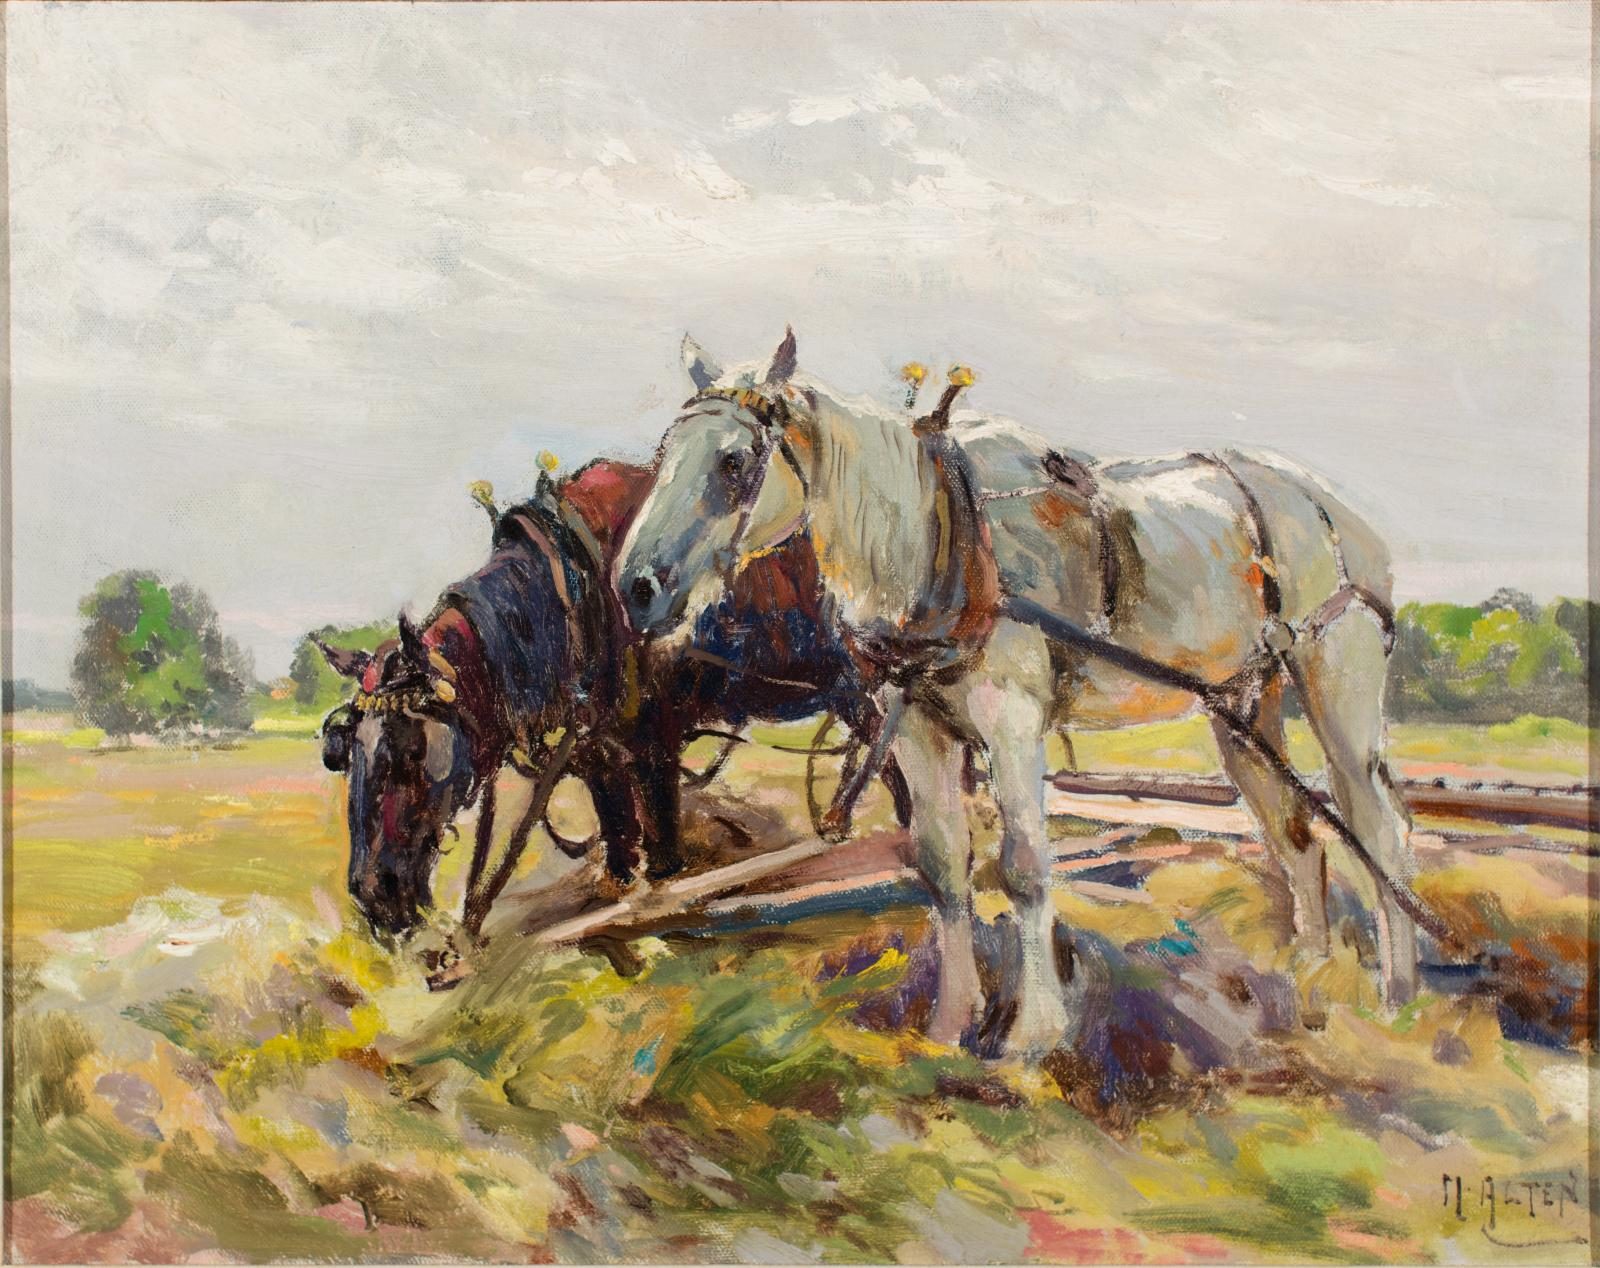 Two harnessed draft horses standing in a field.